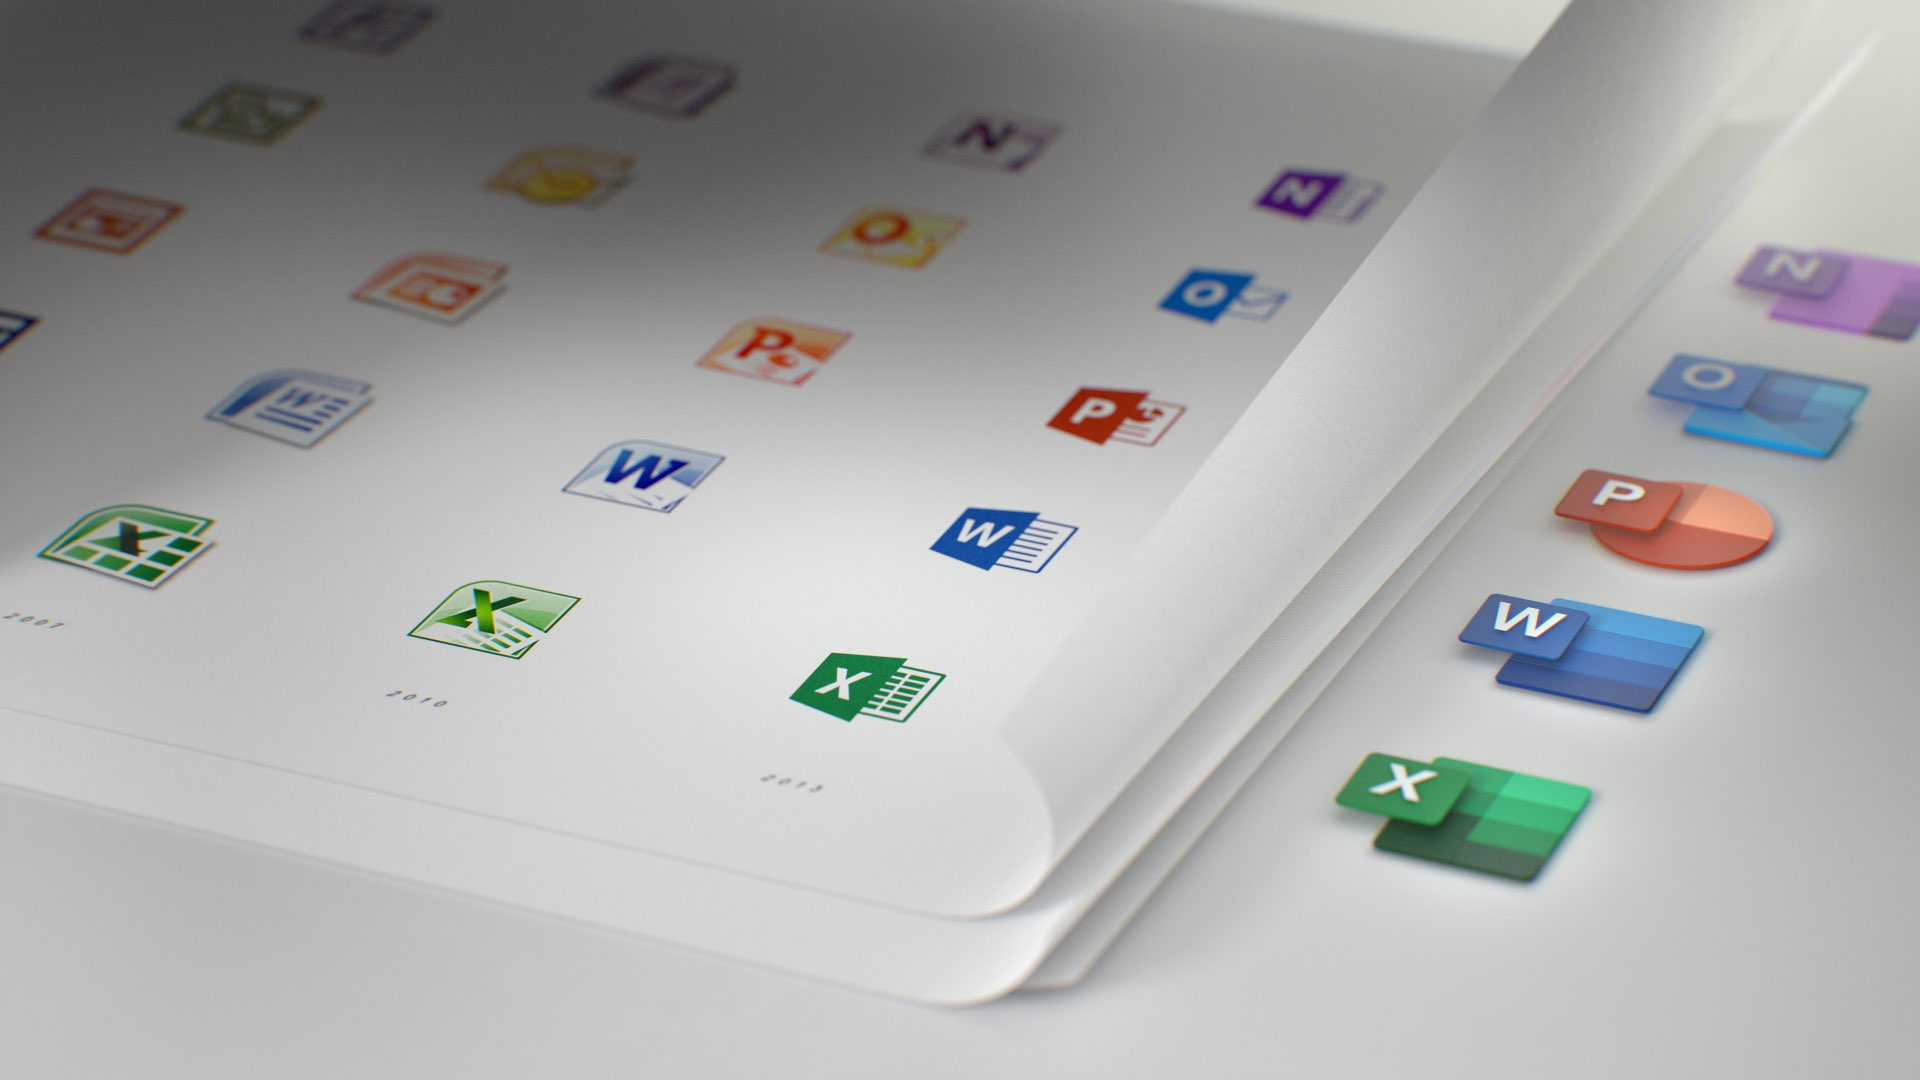 Microsoft Office 365 - Fluent Design icons